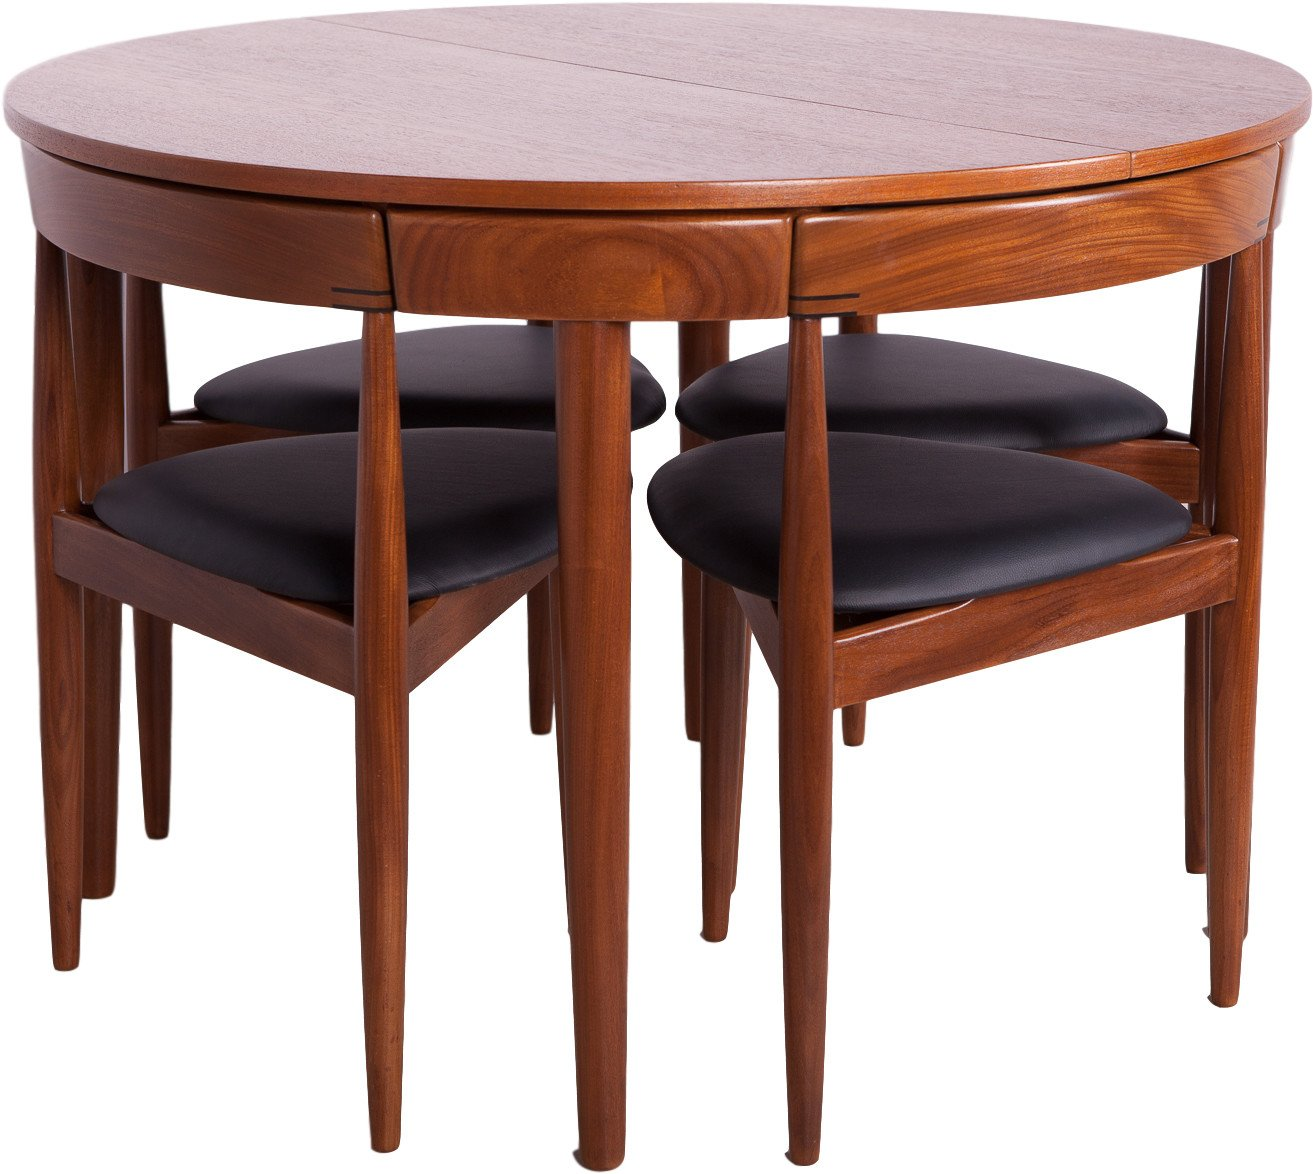 Dining Set by H. Olsen for Frem Røjle, Denmark, 1950s